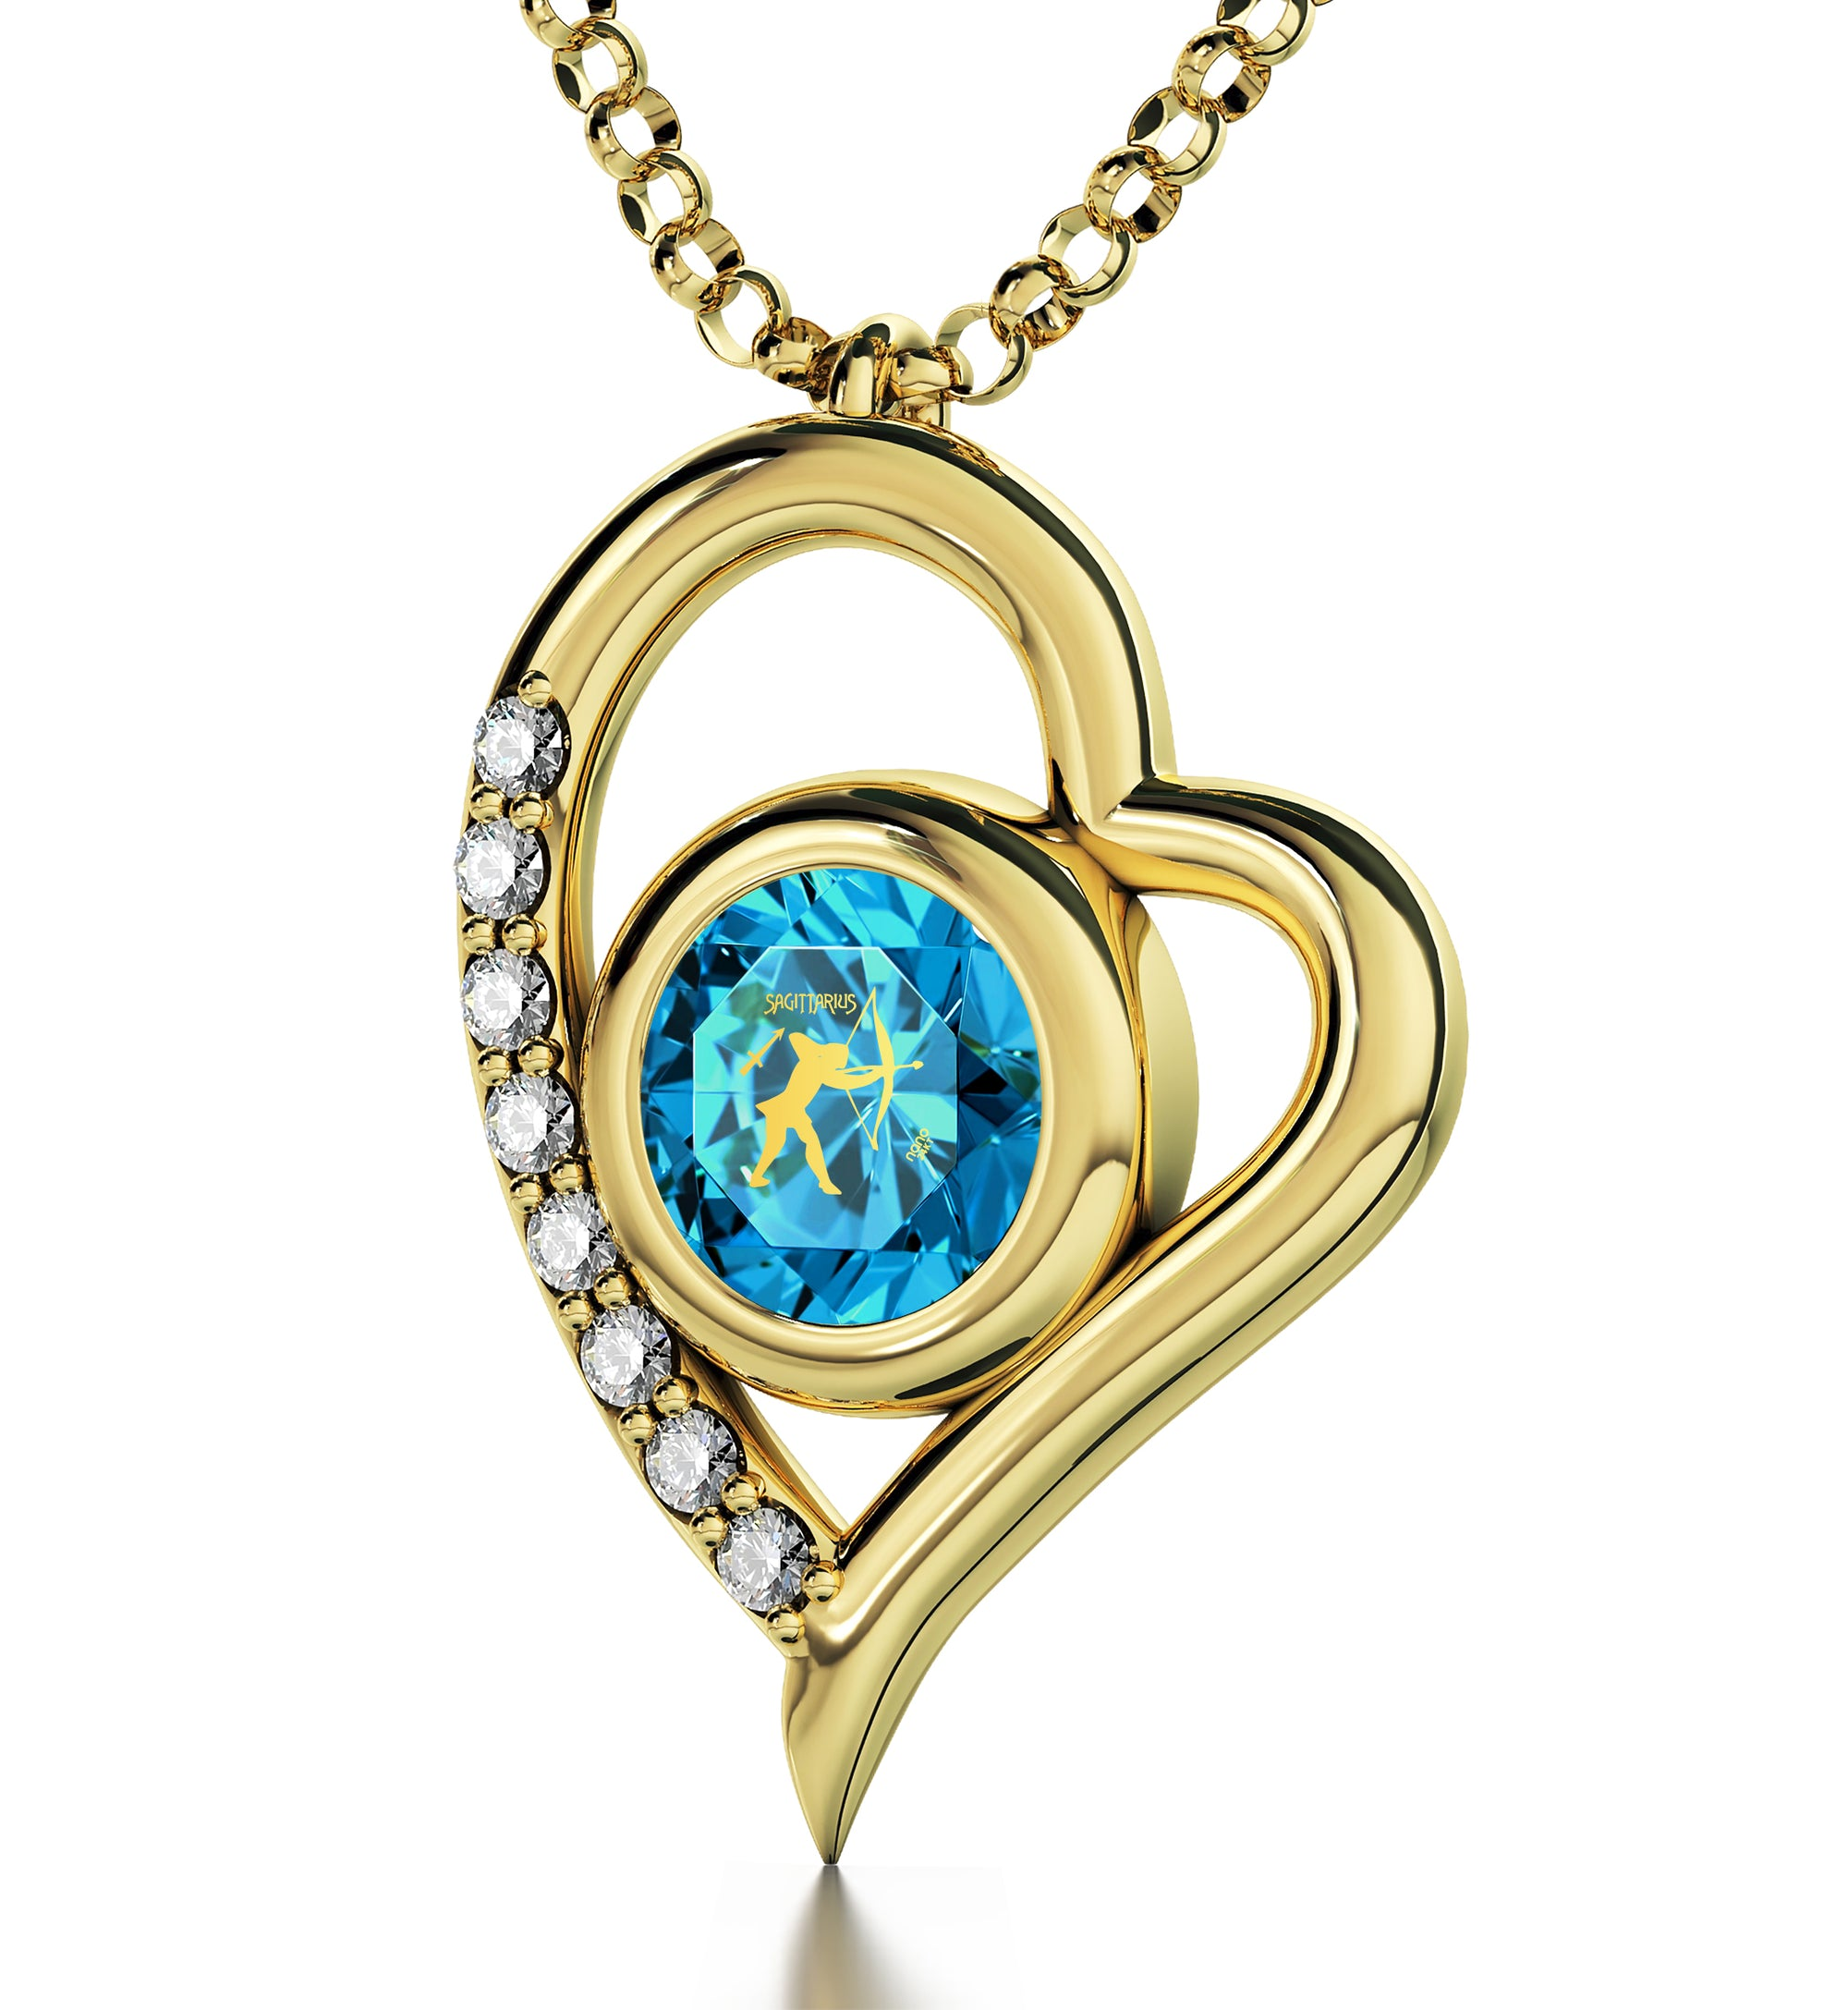 Gold plated sagittarius necklace zodiac heart pendant 24k gold gold plated sagittarius necklace zodiac heart pendant 24k gold inscribed on crystal aloadofball Image collections